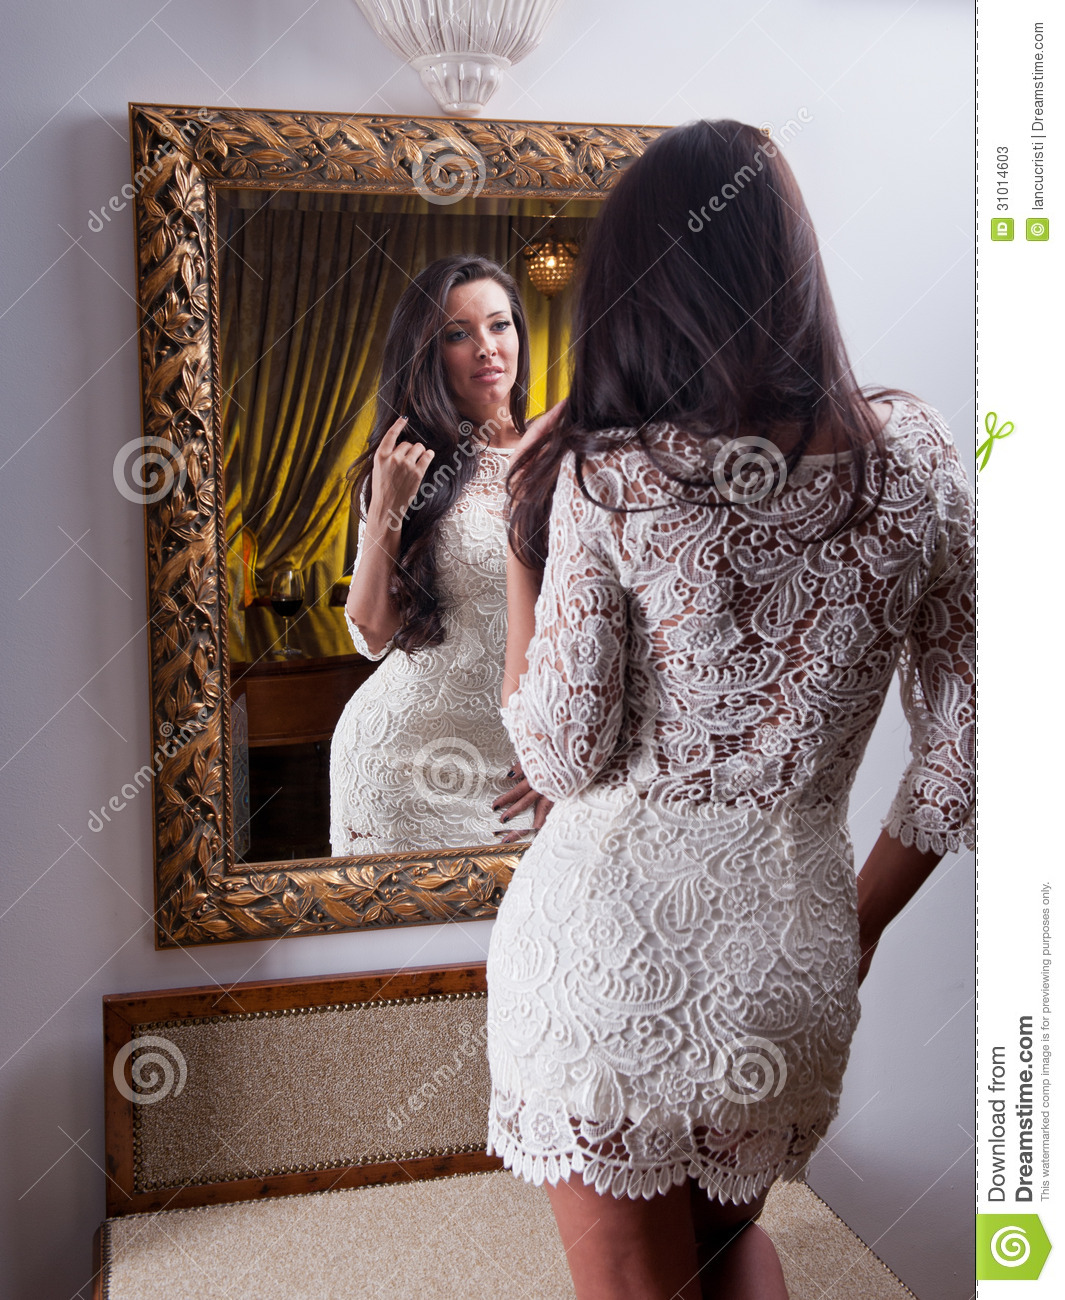 The beautiful girl in a short white dress looking into for Looking for mirrors